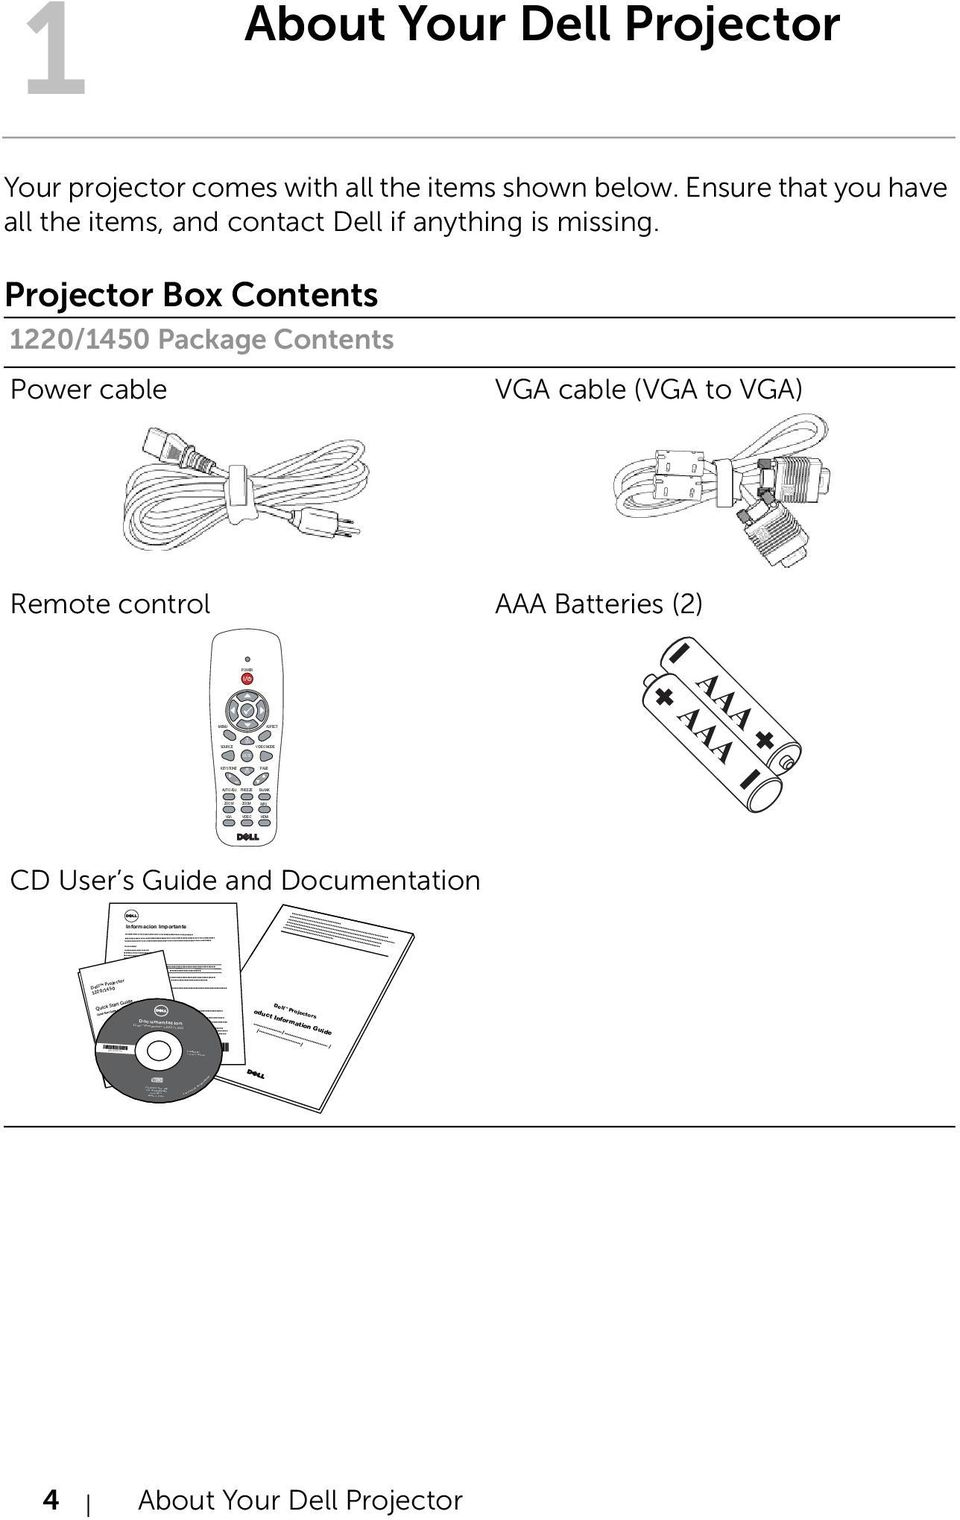 Dell Projector 1220 1450 User S Guide Pdf Microwave Oven Schematic Image Touch Control Panel Circuit Ensure That You Have All The Items And Contact If Anything Is